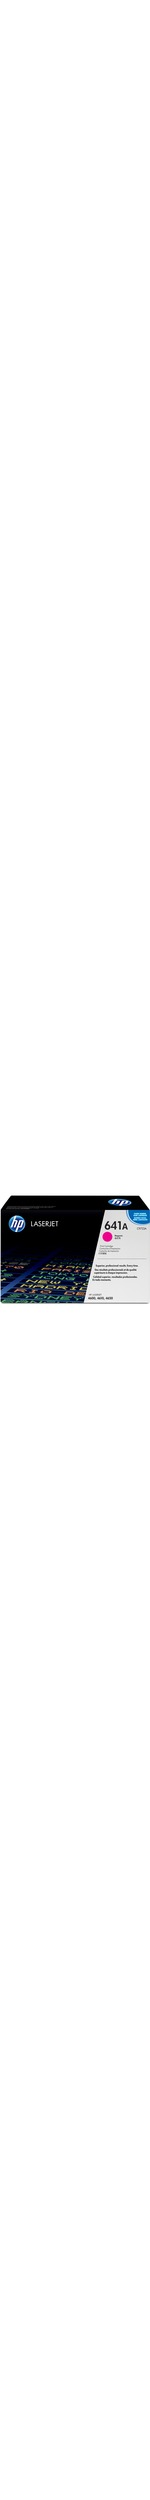 HP 641A Toner Cartridge - Magenta - Laser - 8000 Page - 1 Each